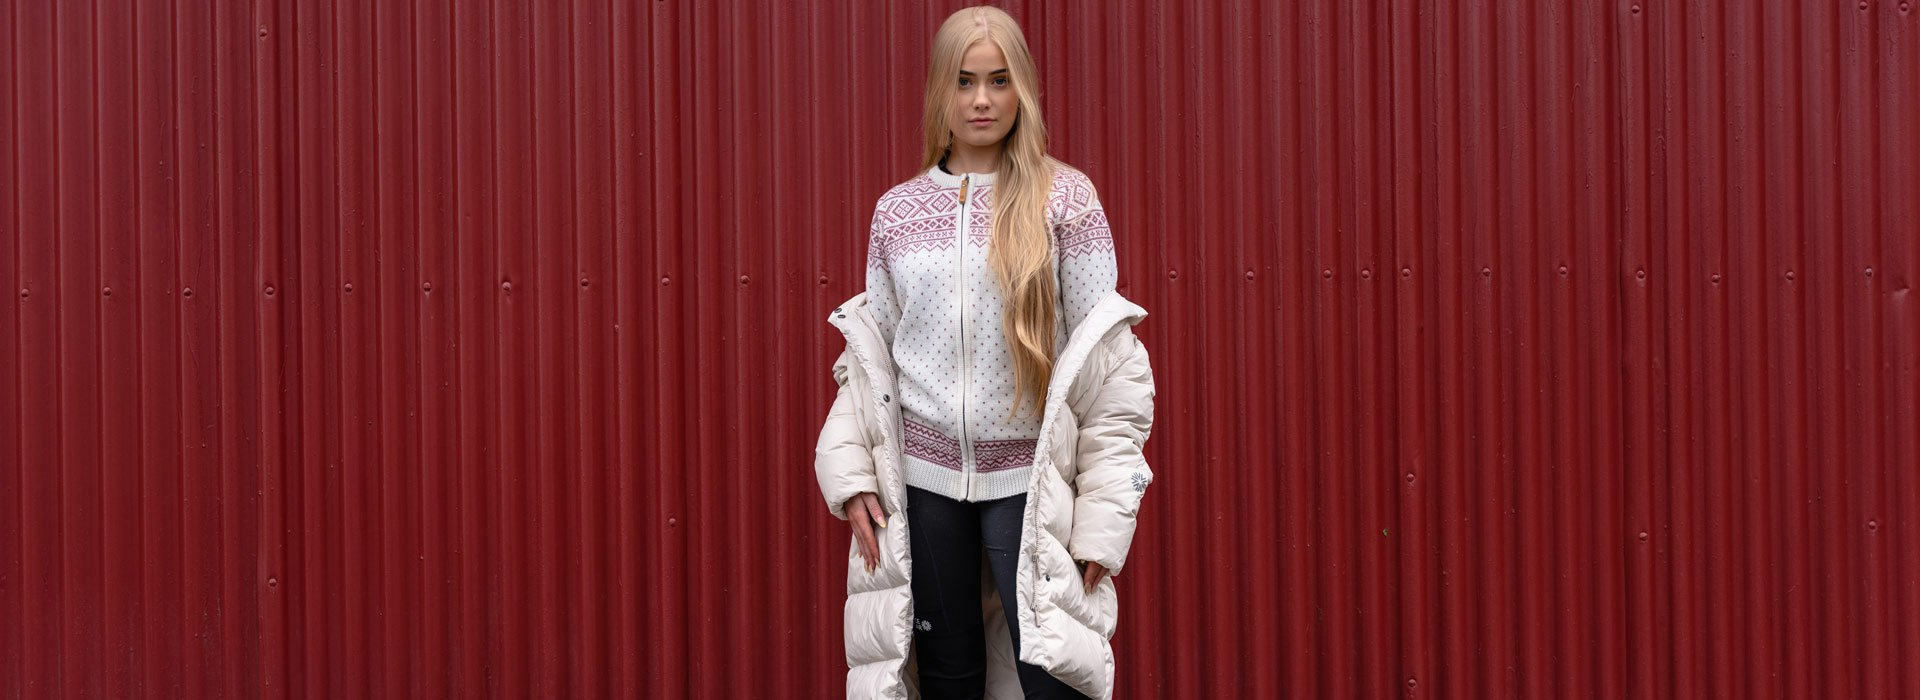 Nordic knit sweaters